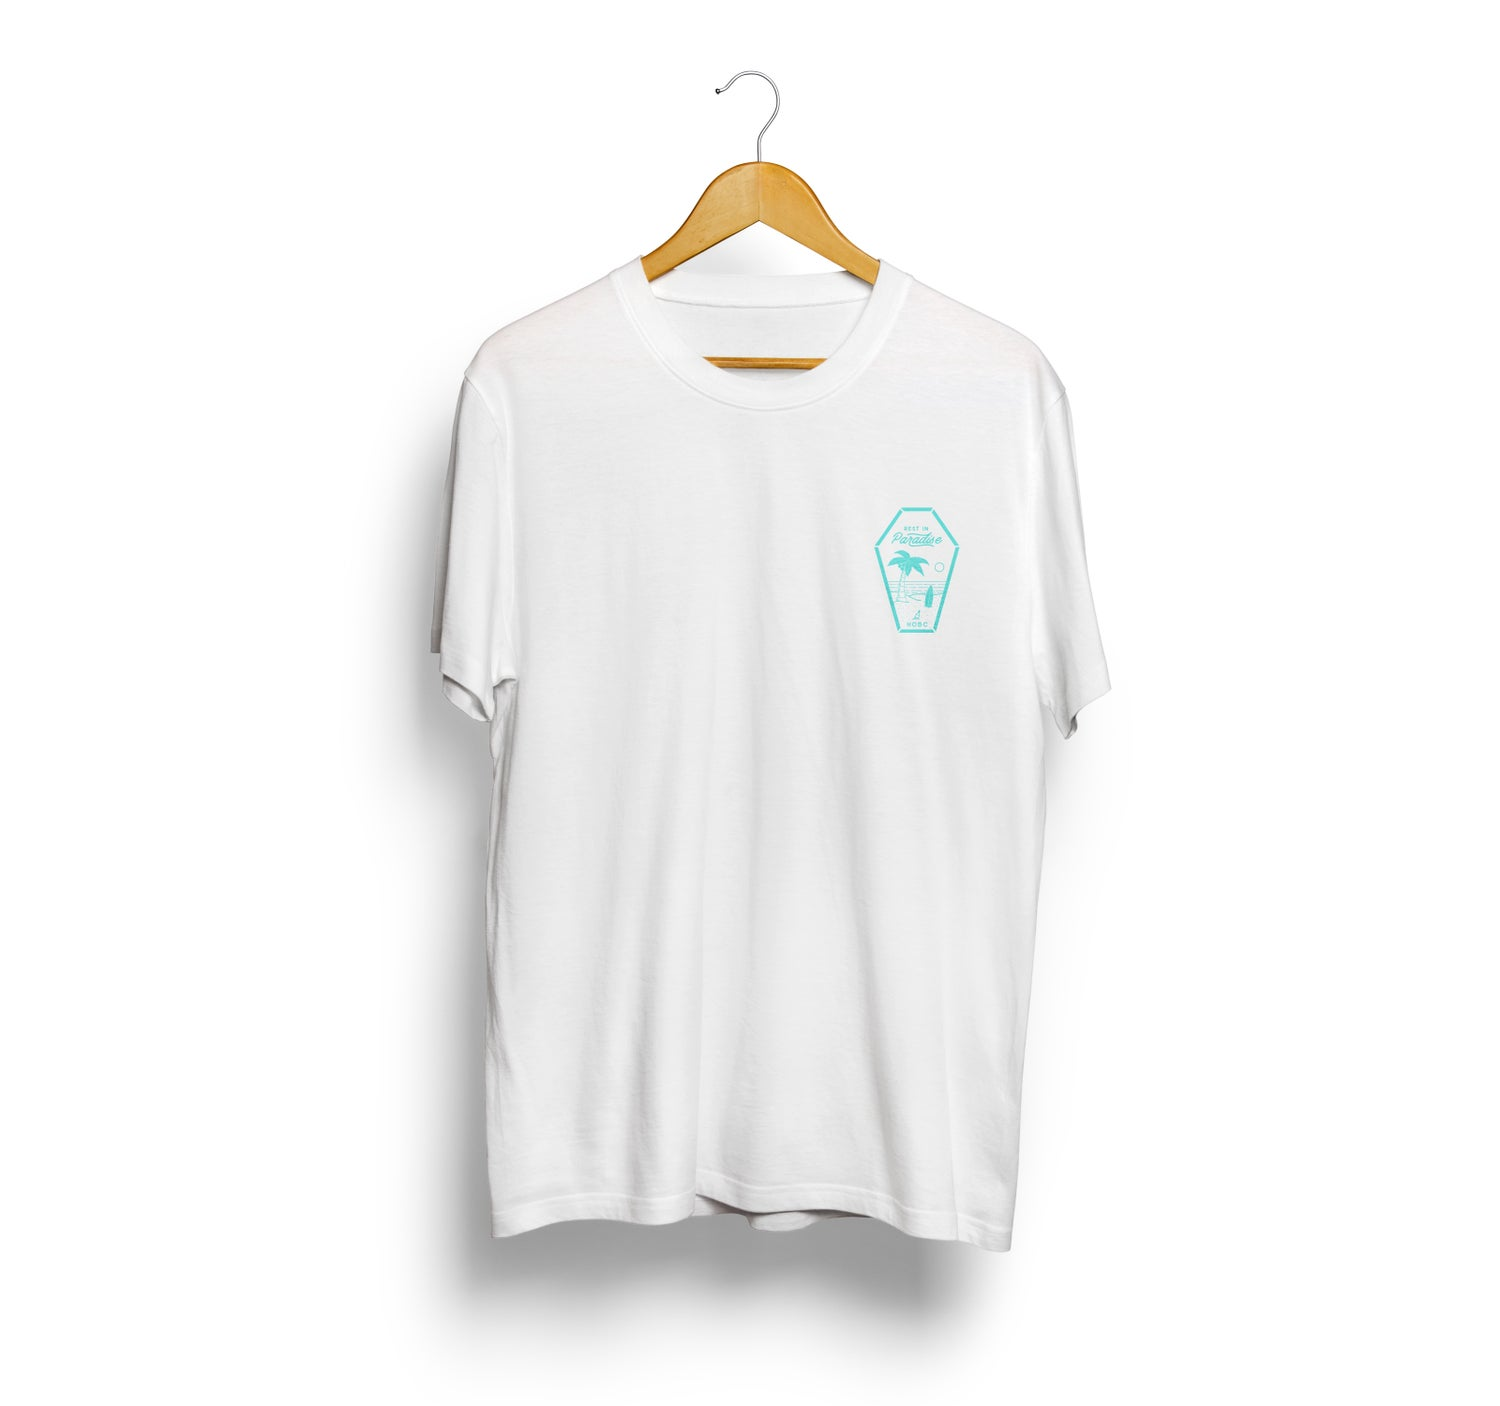 Image of RIP white/baby blue t-shirt